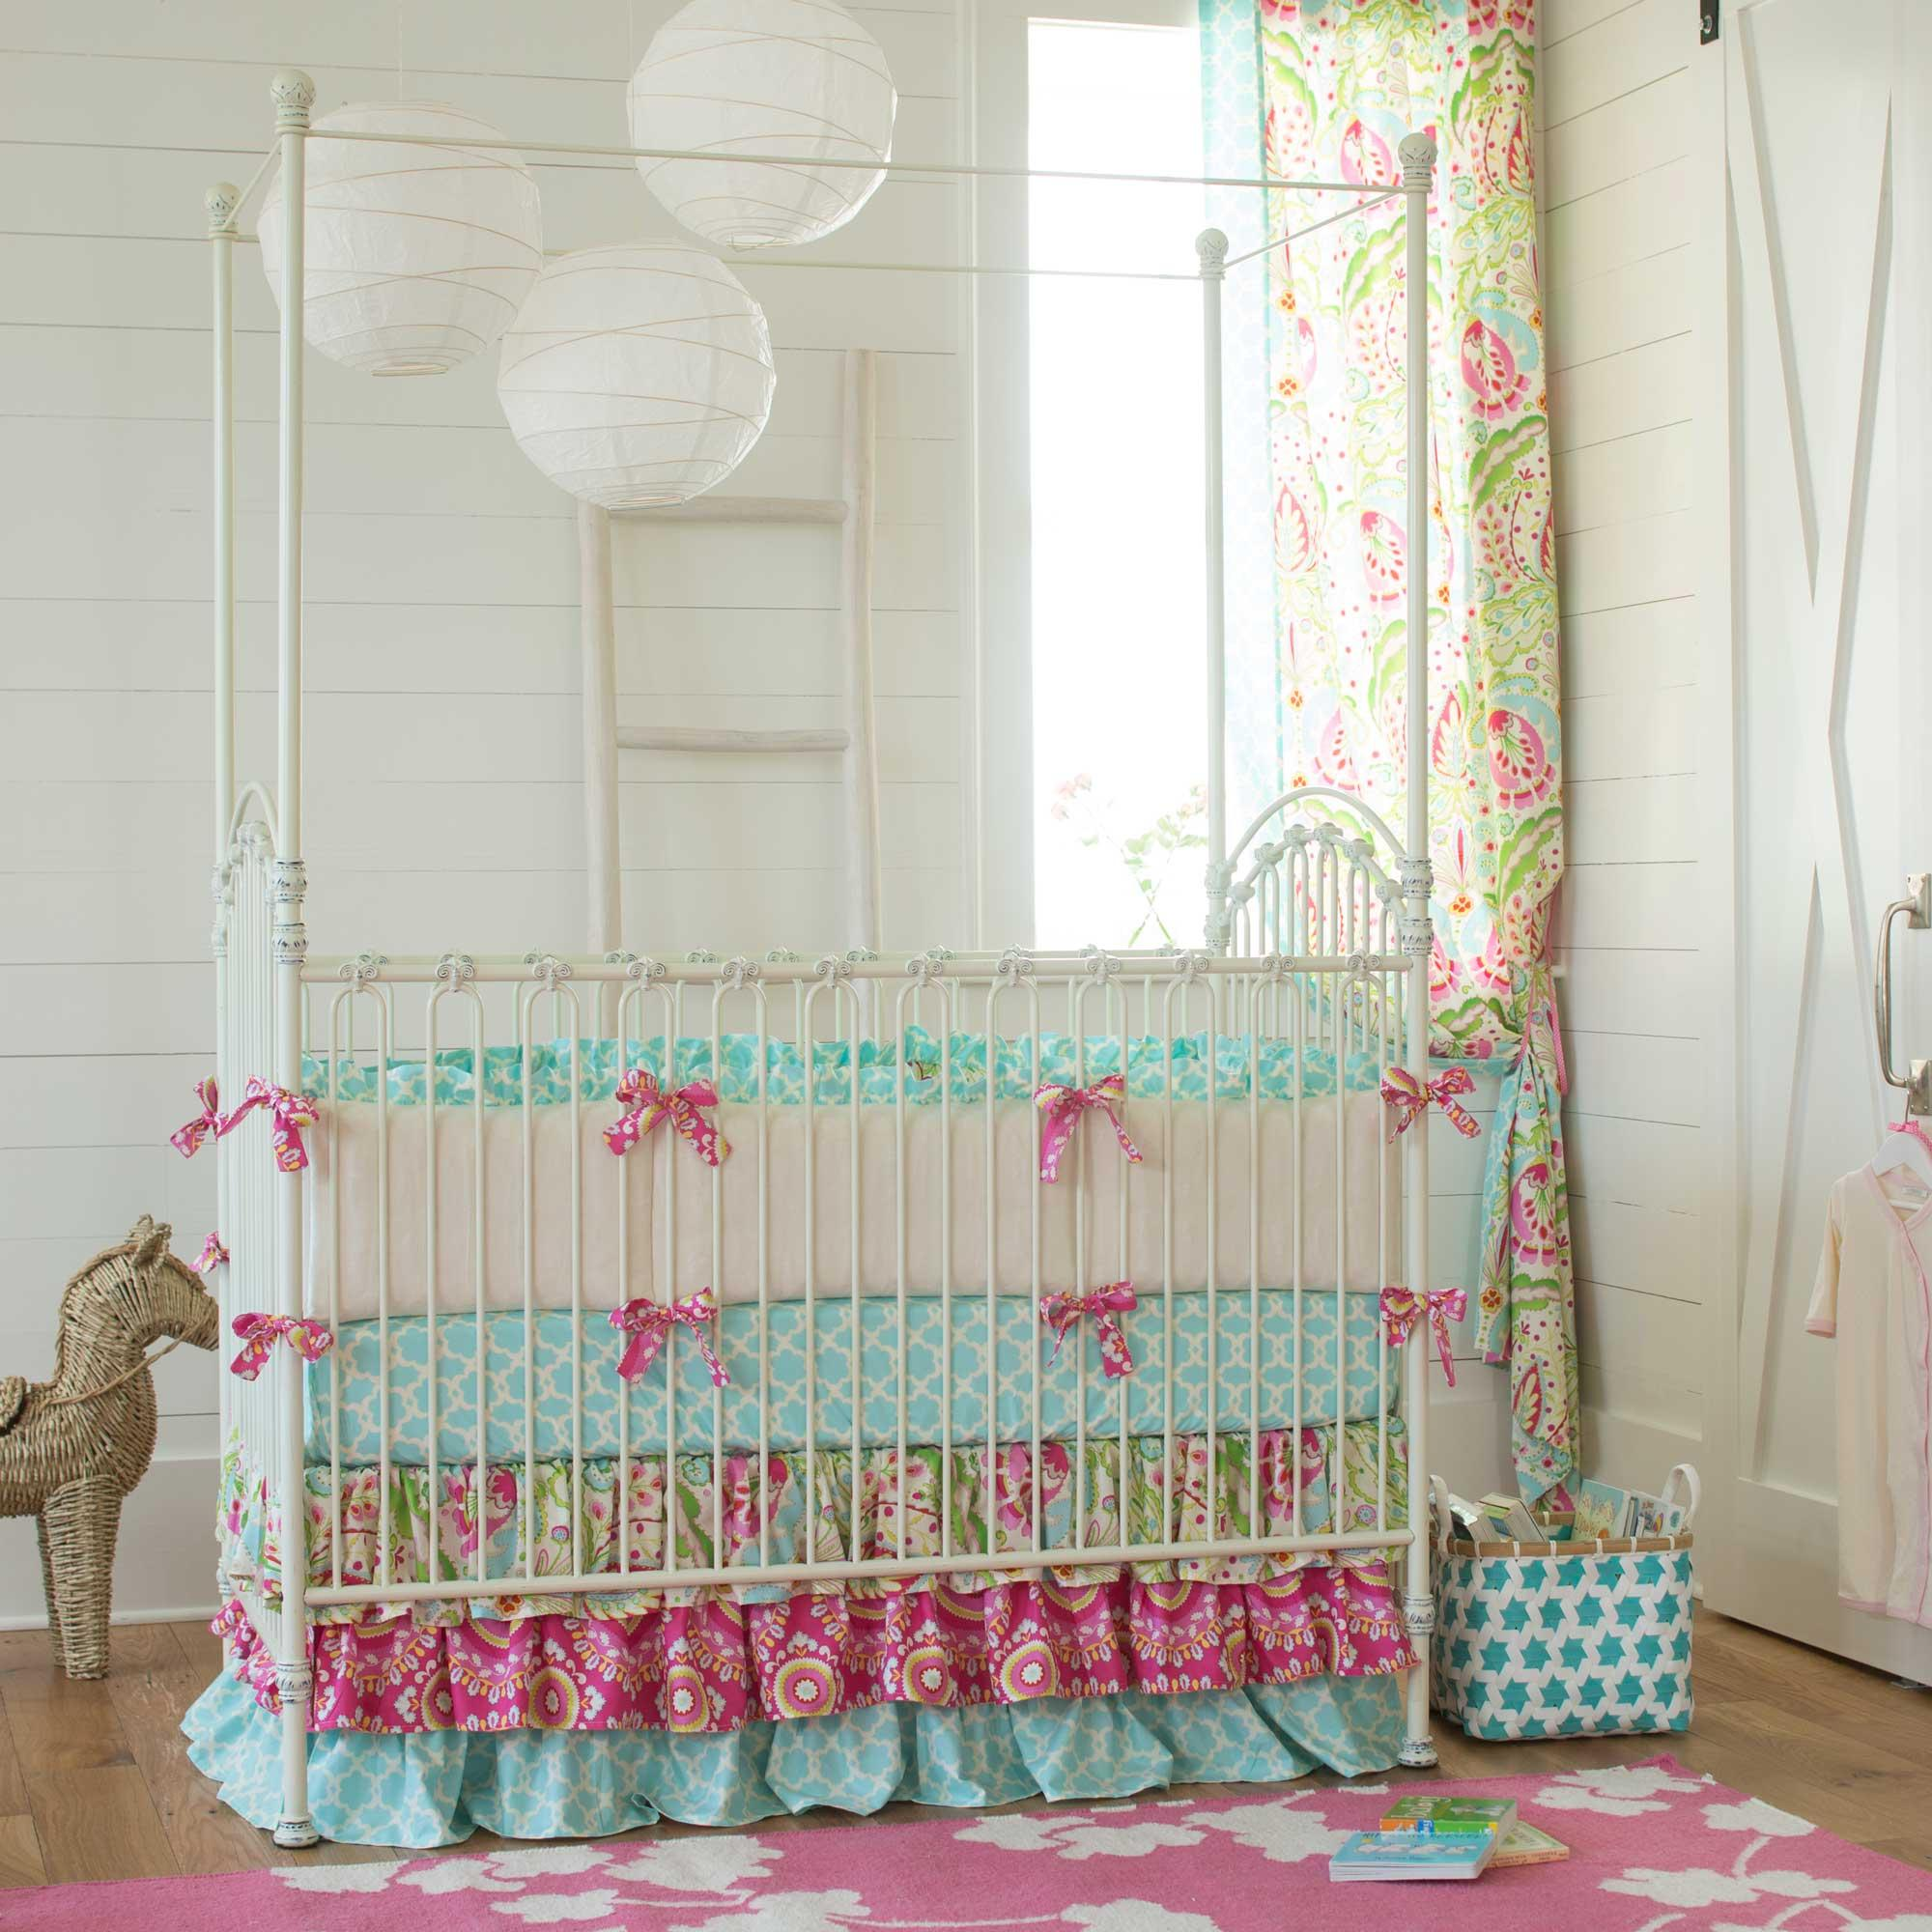 Girl crib bedding sets for your baby girl